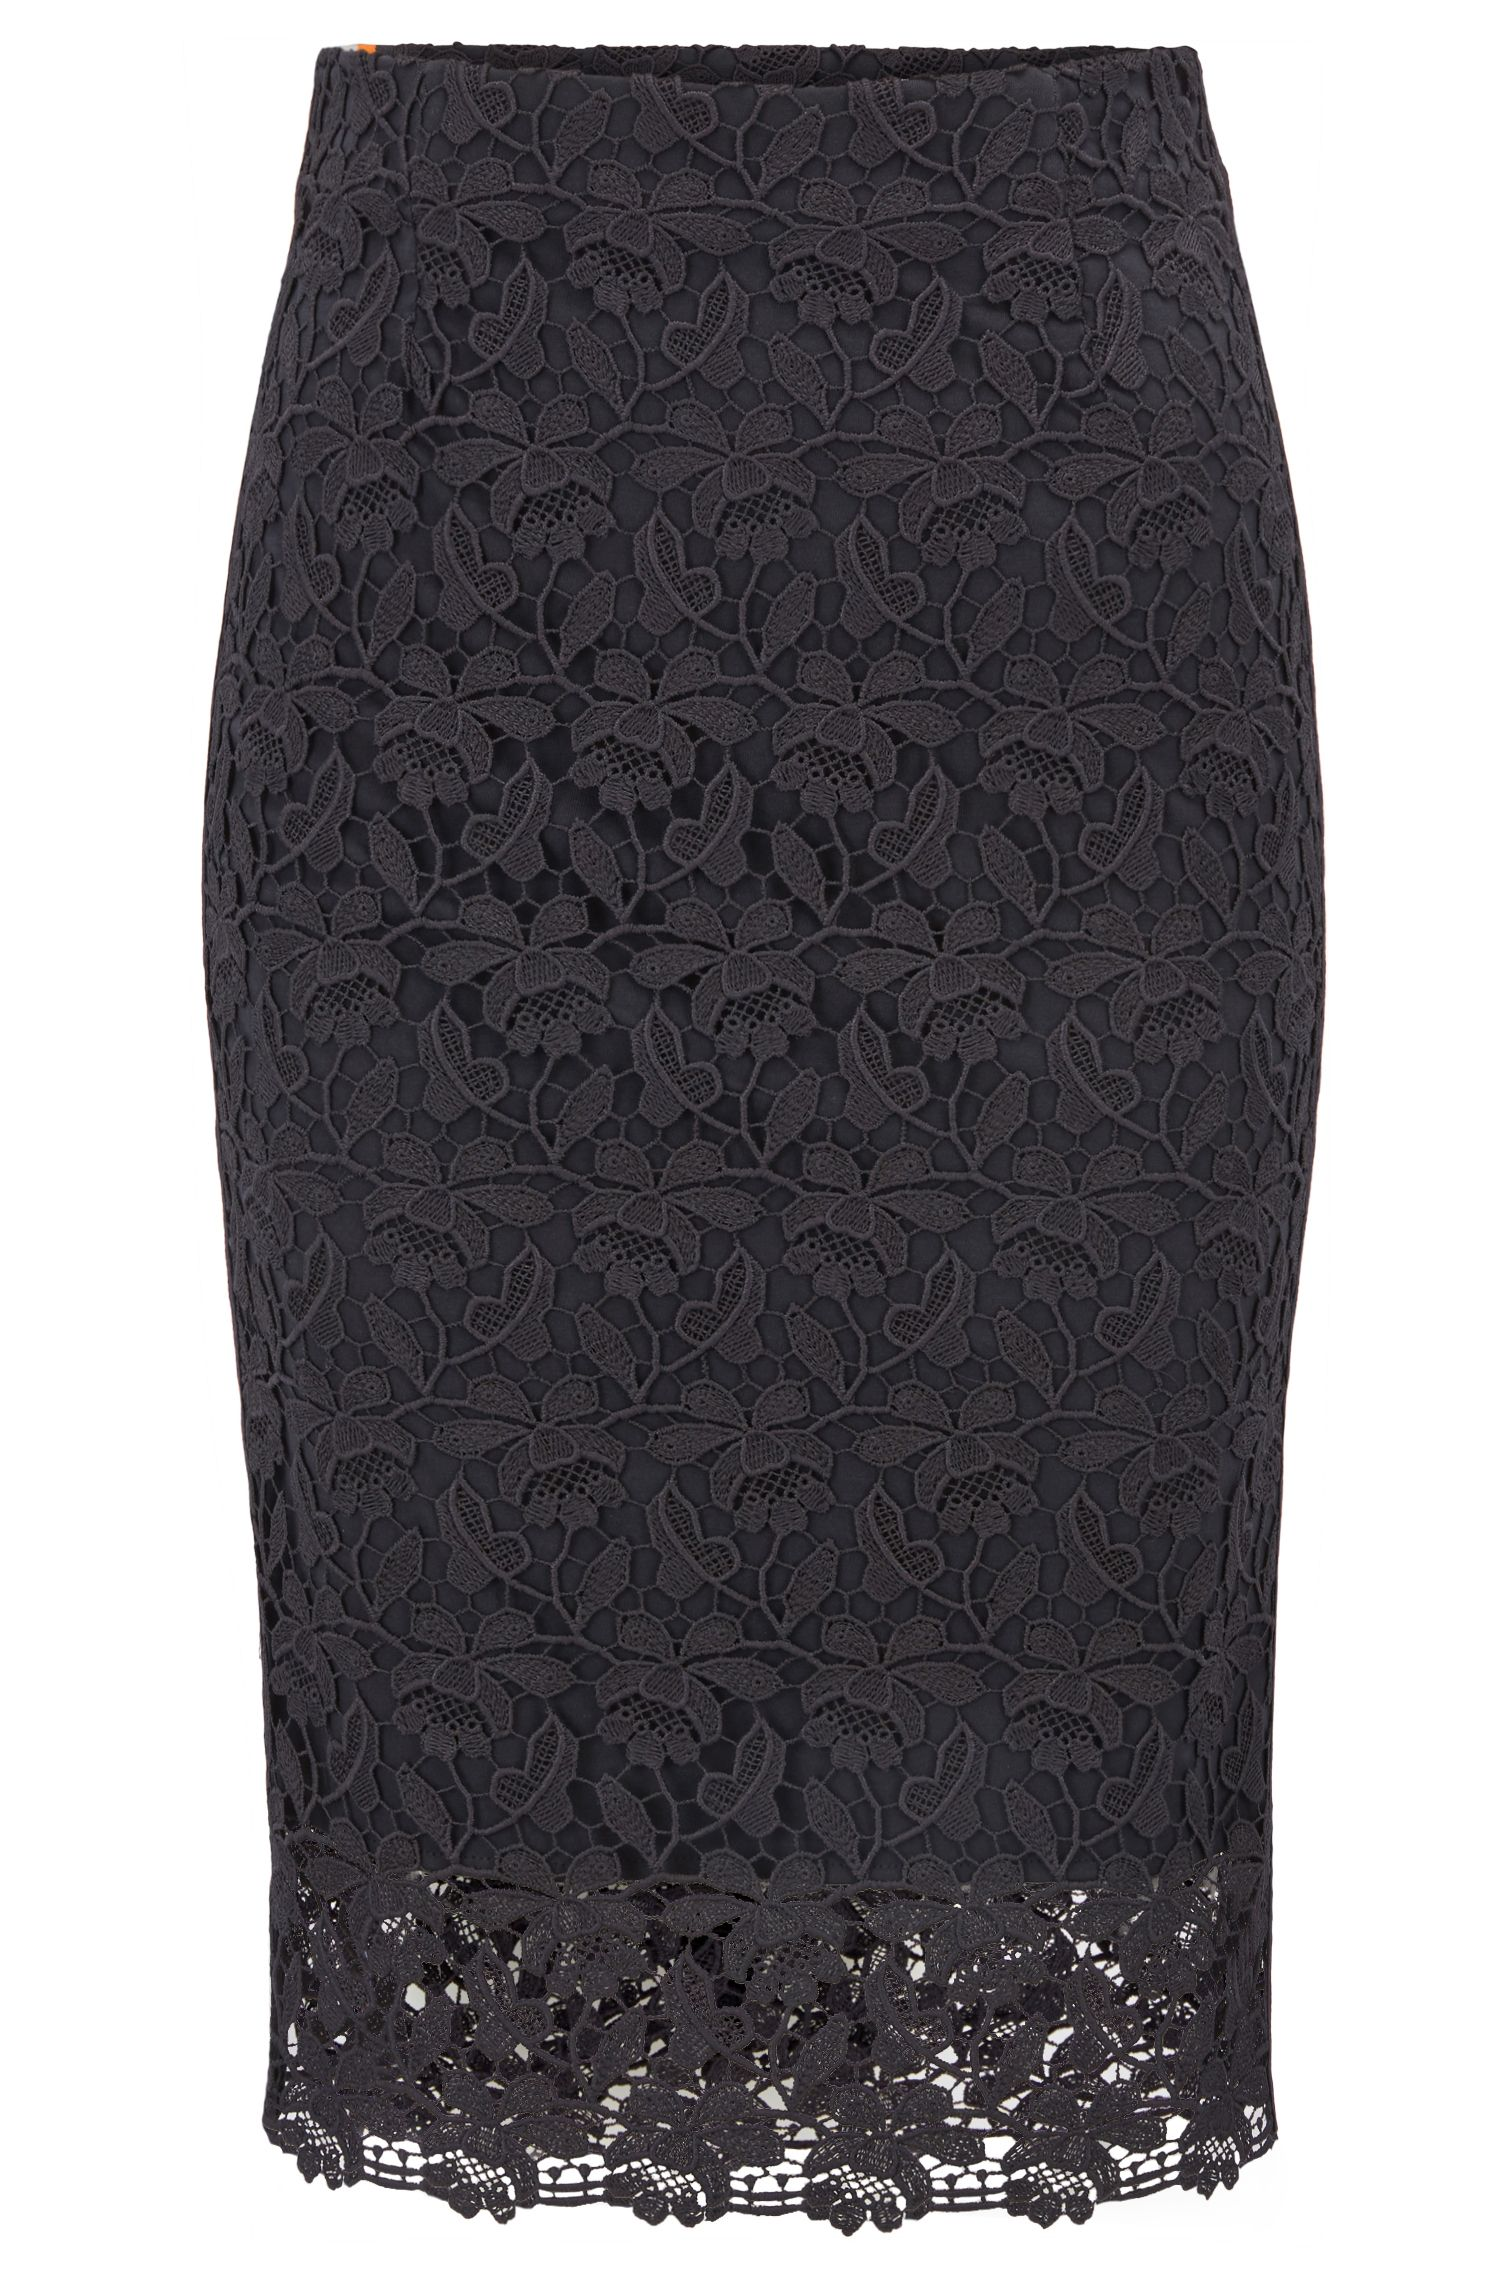 Jersey-lined lace pencil skirt with striped tape